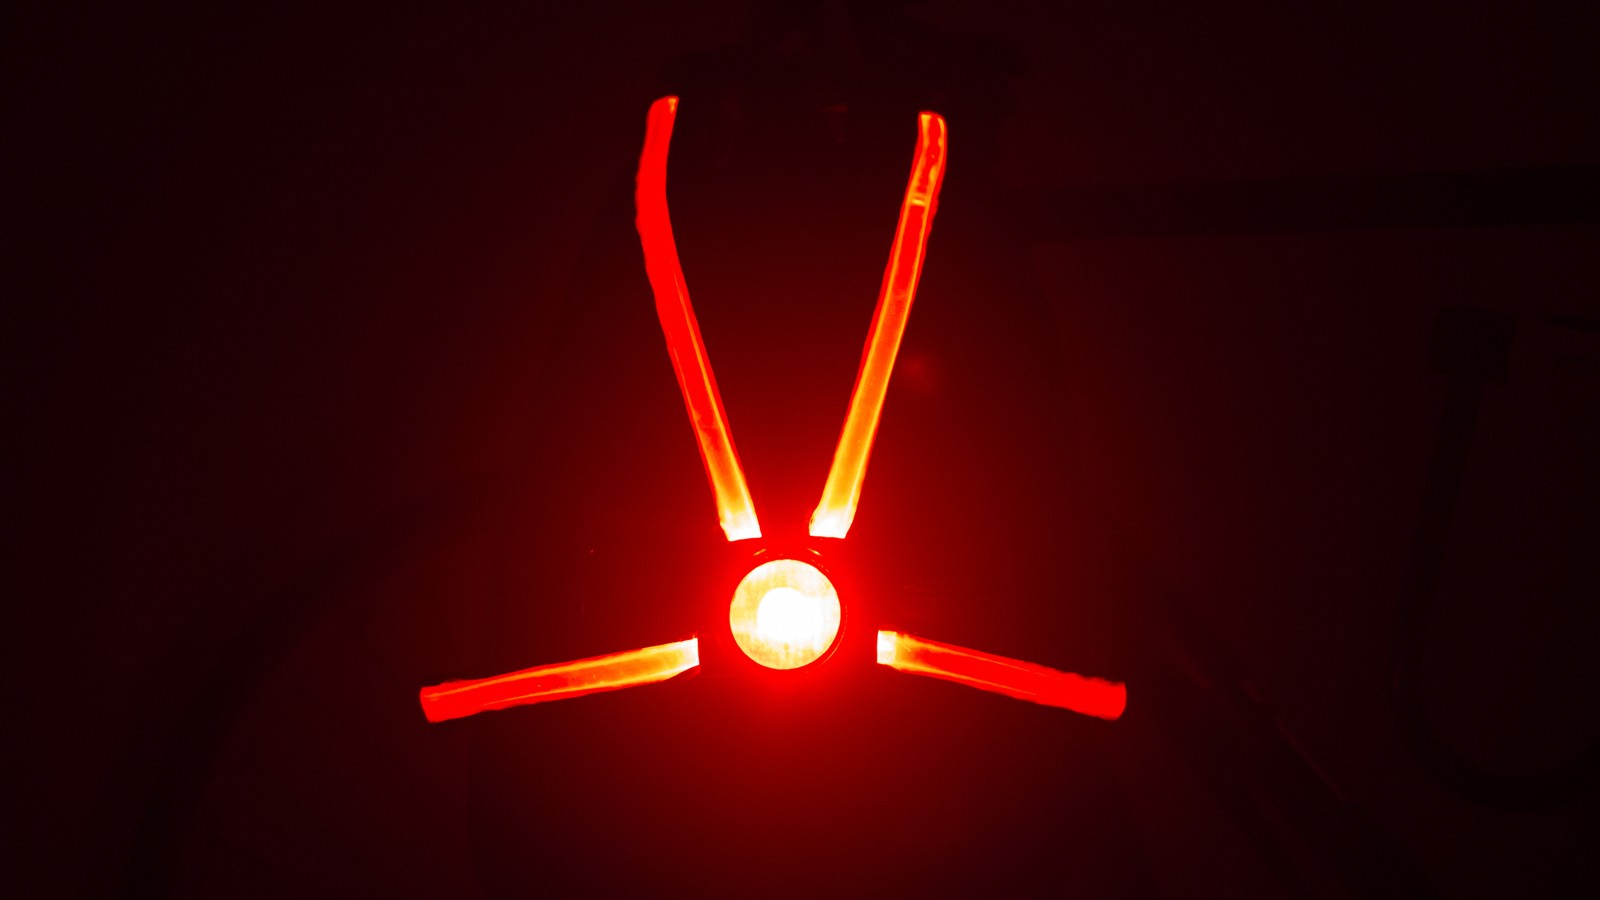 The Veglo really does glow brightly